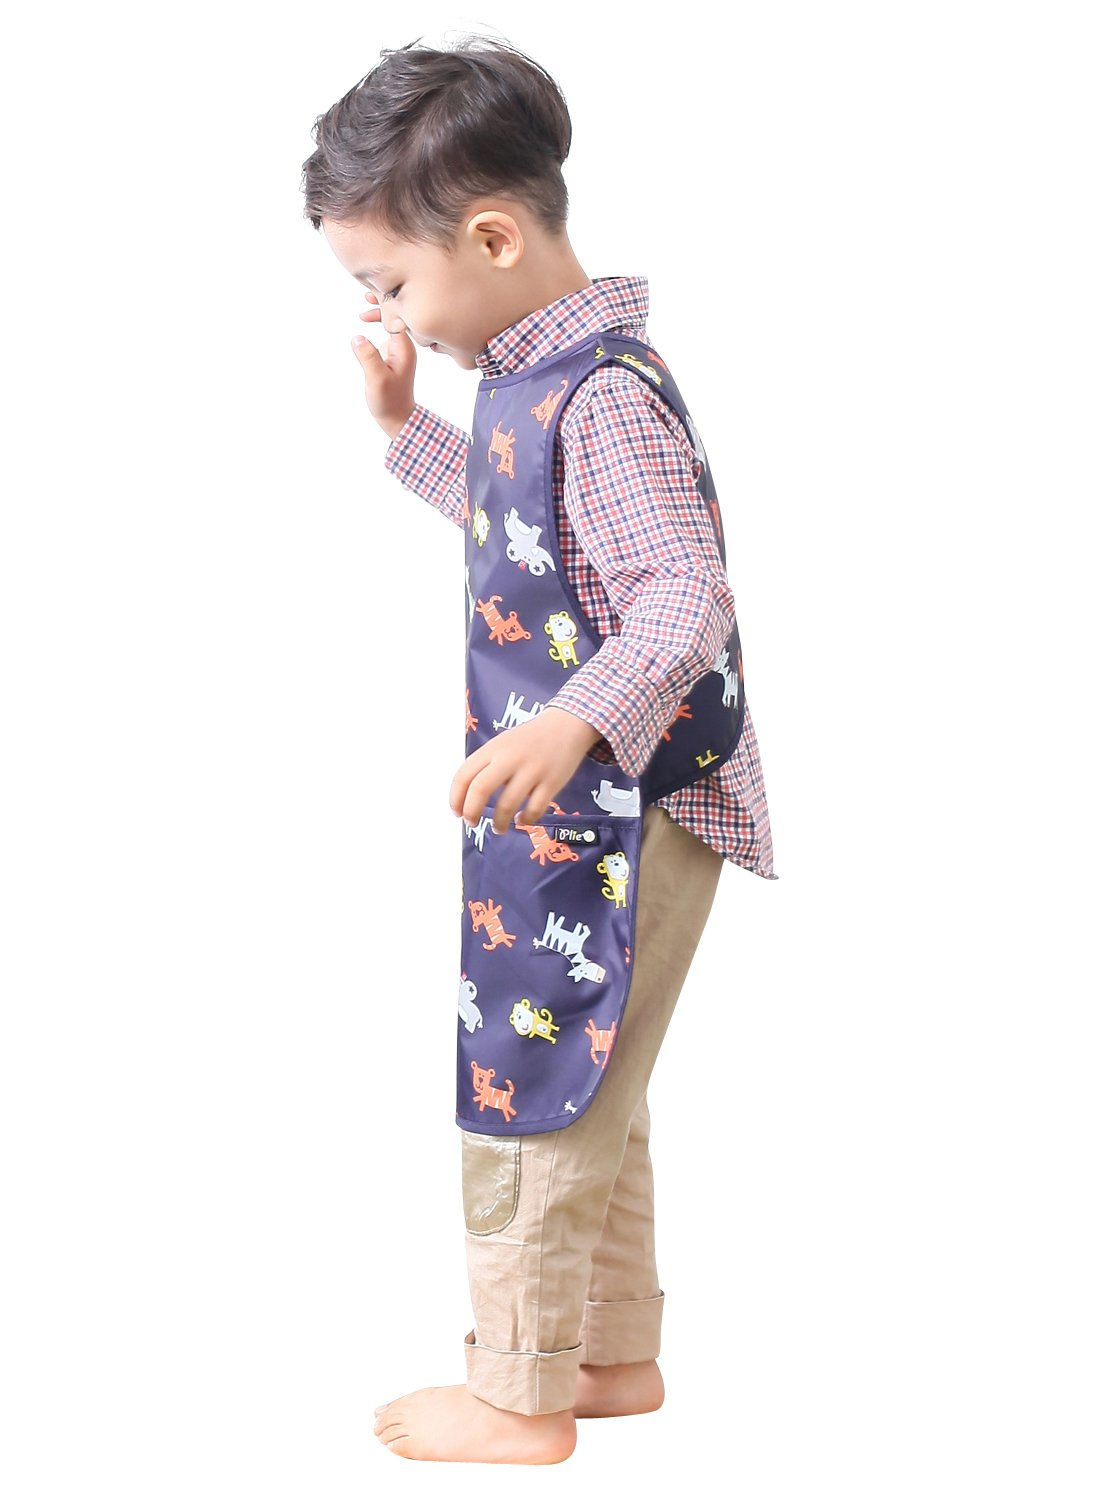 PLIE Kids Art Smock Sleeveless 37colors Age 1~8 Years S~XLsize Blue Star Children Waterproof Painting Aprons 37colors 11-L